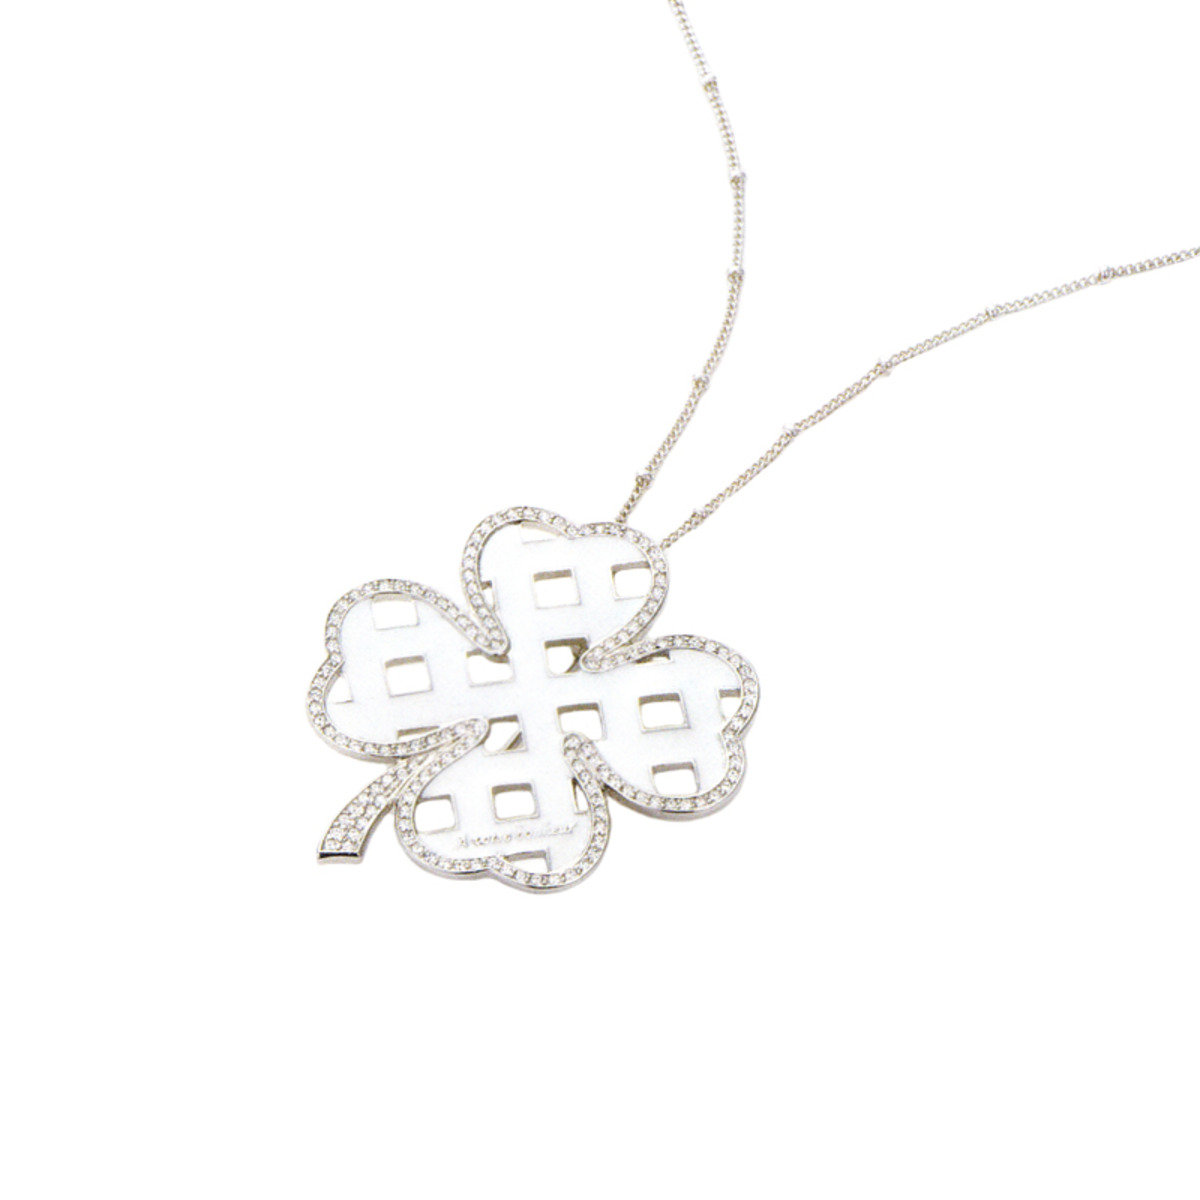 Clover@1907 necklace